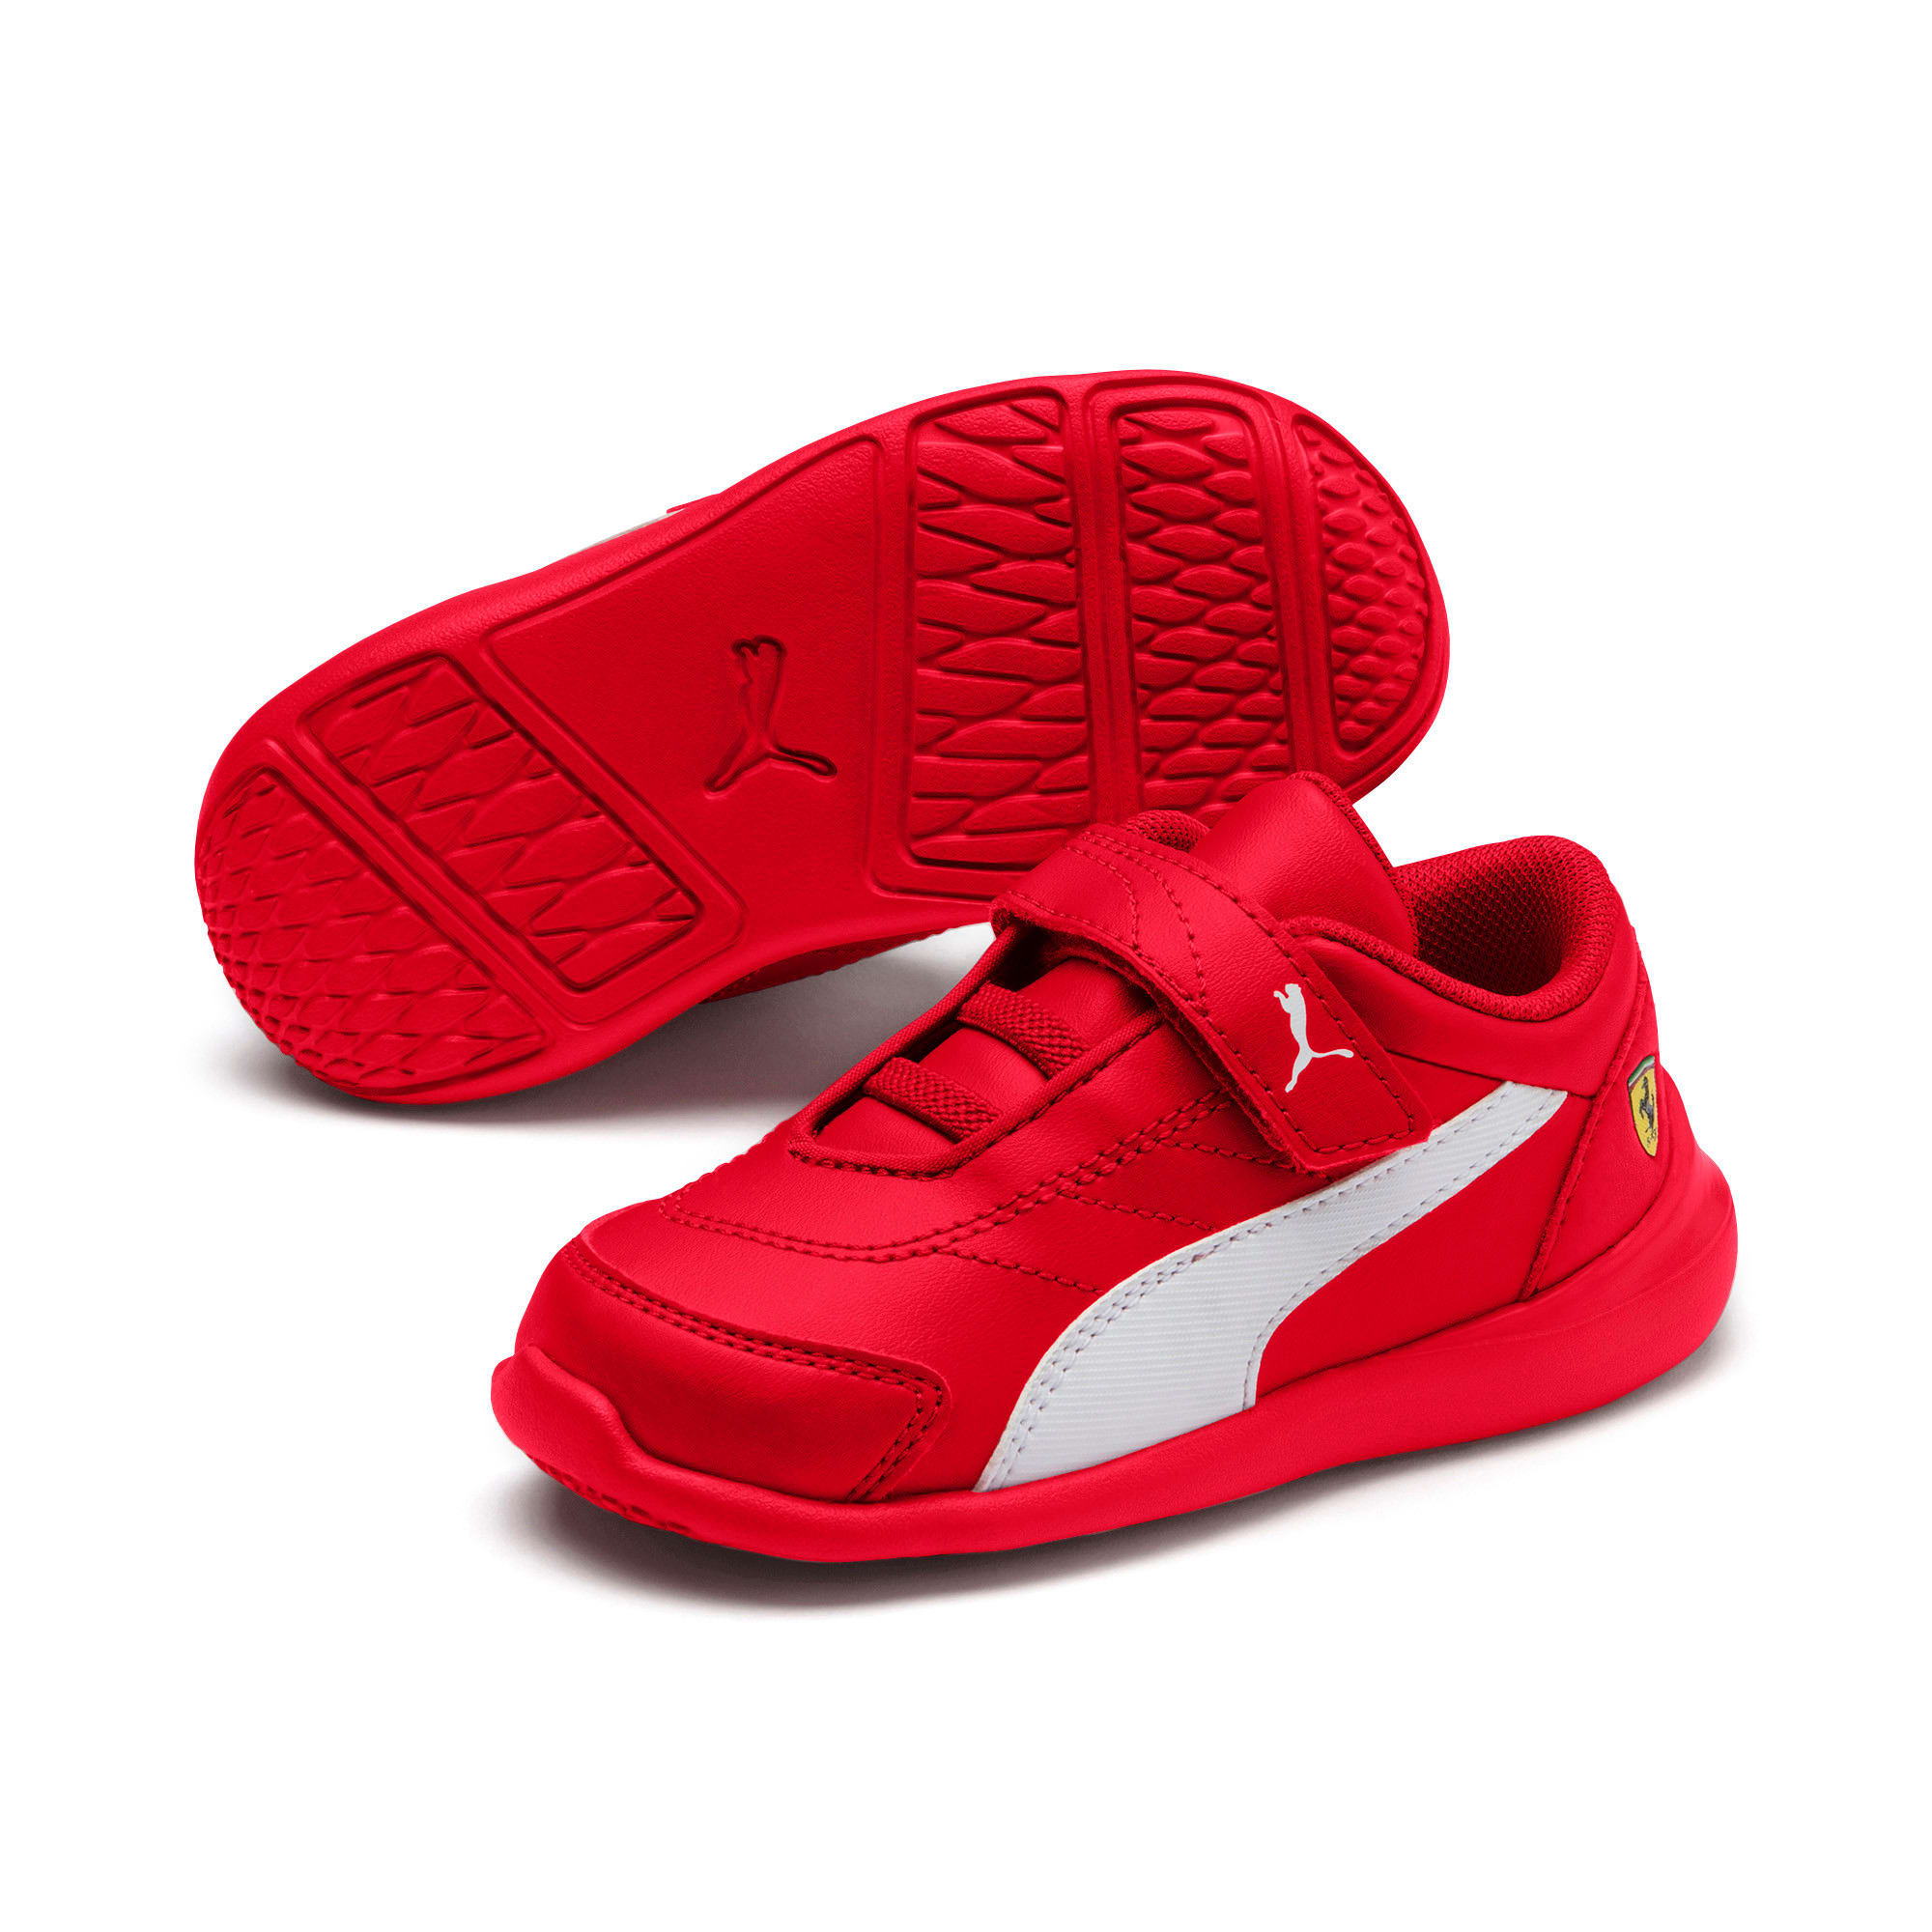 Thumbnail 2 of Scuderia Ferrari Kart Cat III Toddler Shoes, Rosso Corsa-Wht-Rosso Corsa, medium